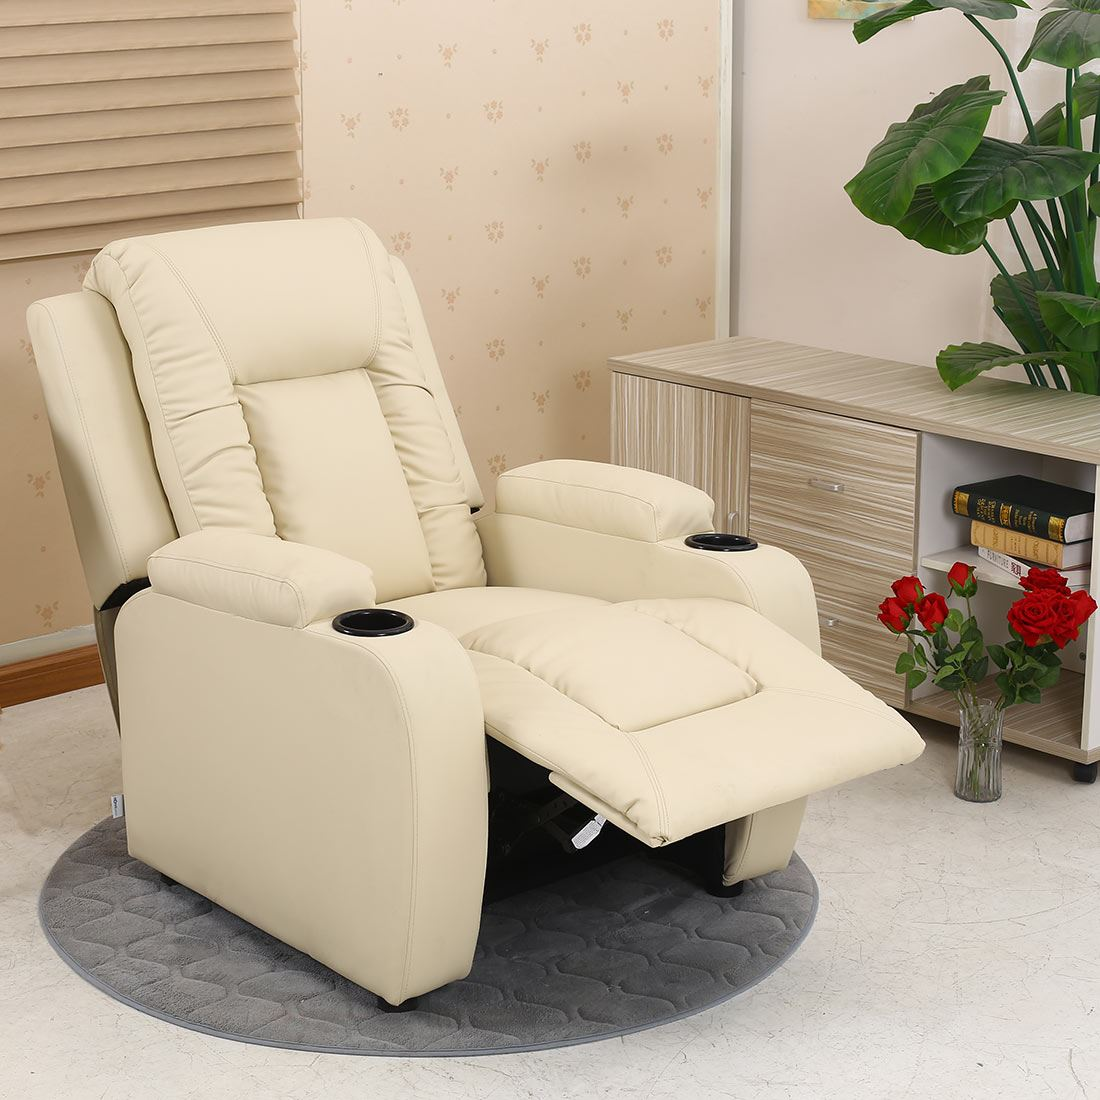 sofa armchair drink holder caddy argos 2 seater covers oscar leather recliner w holders chair